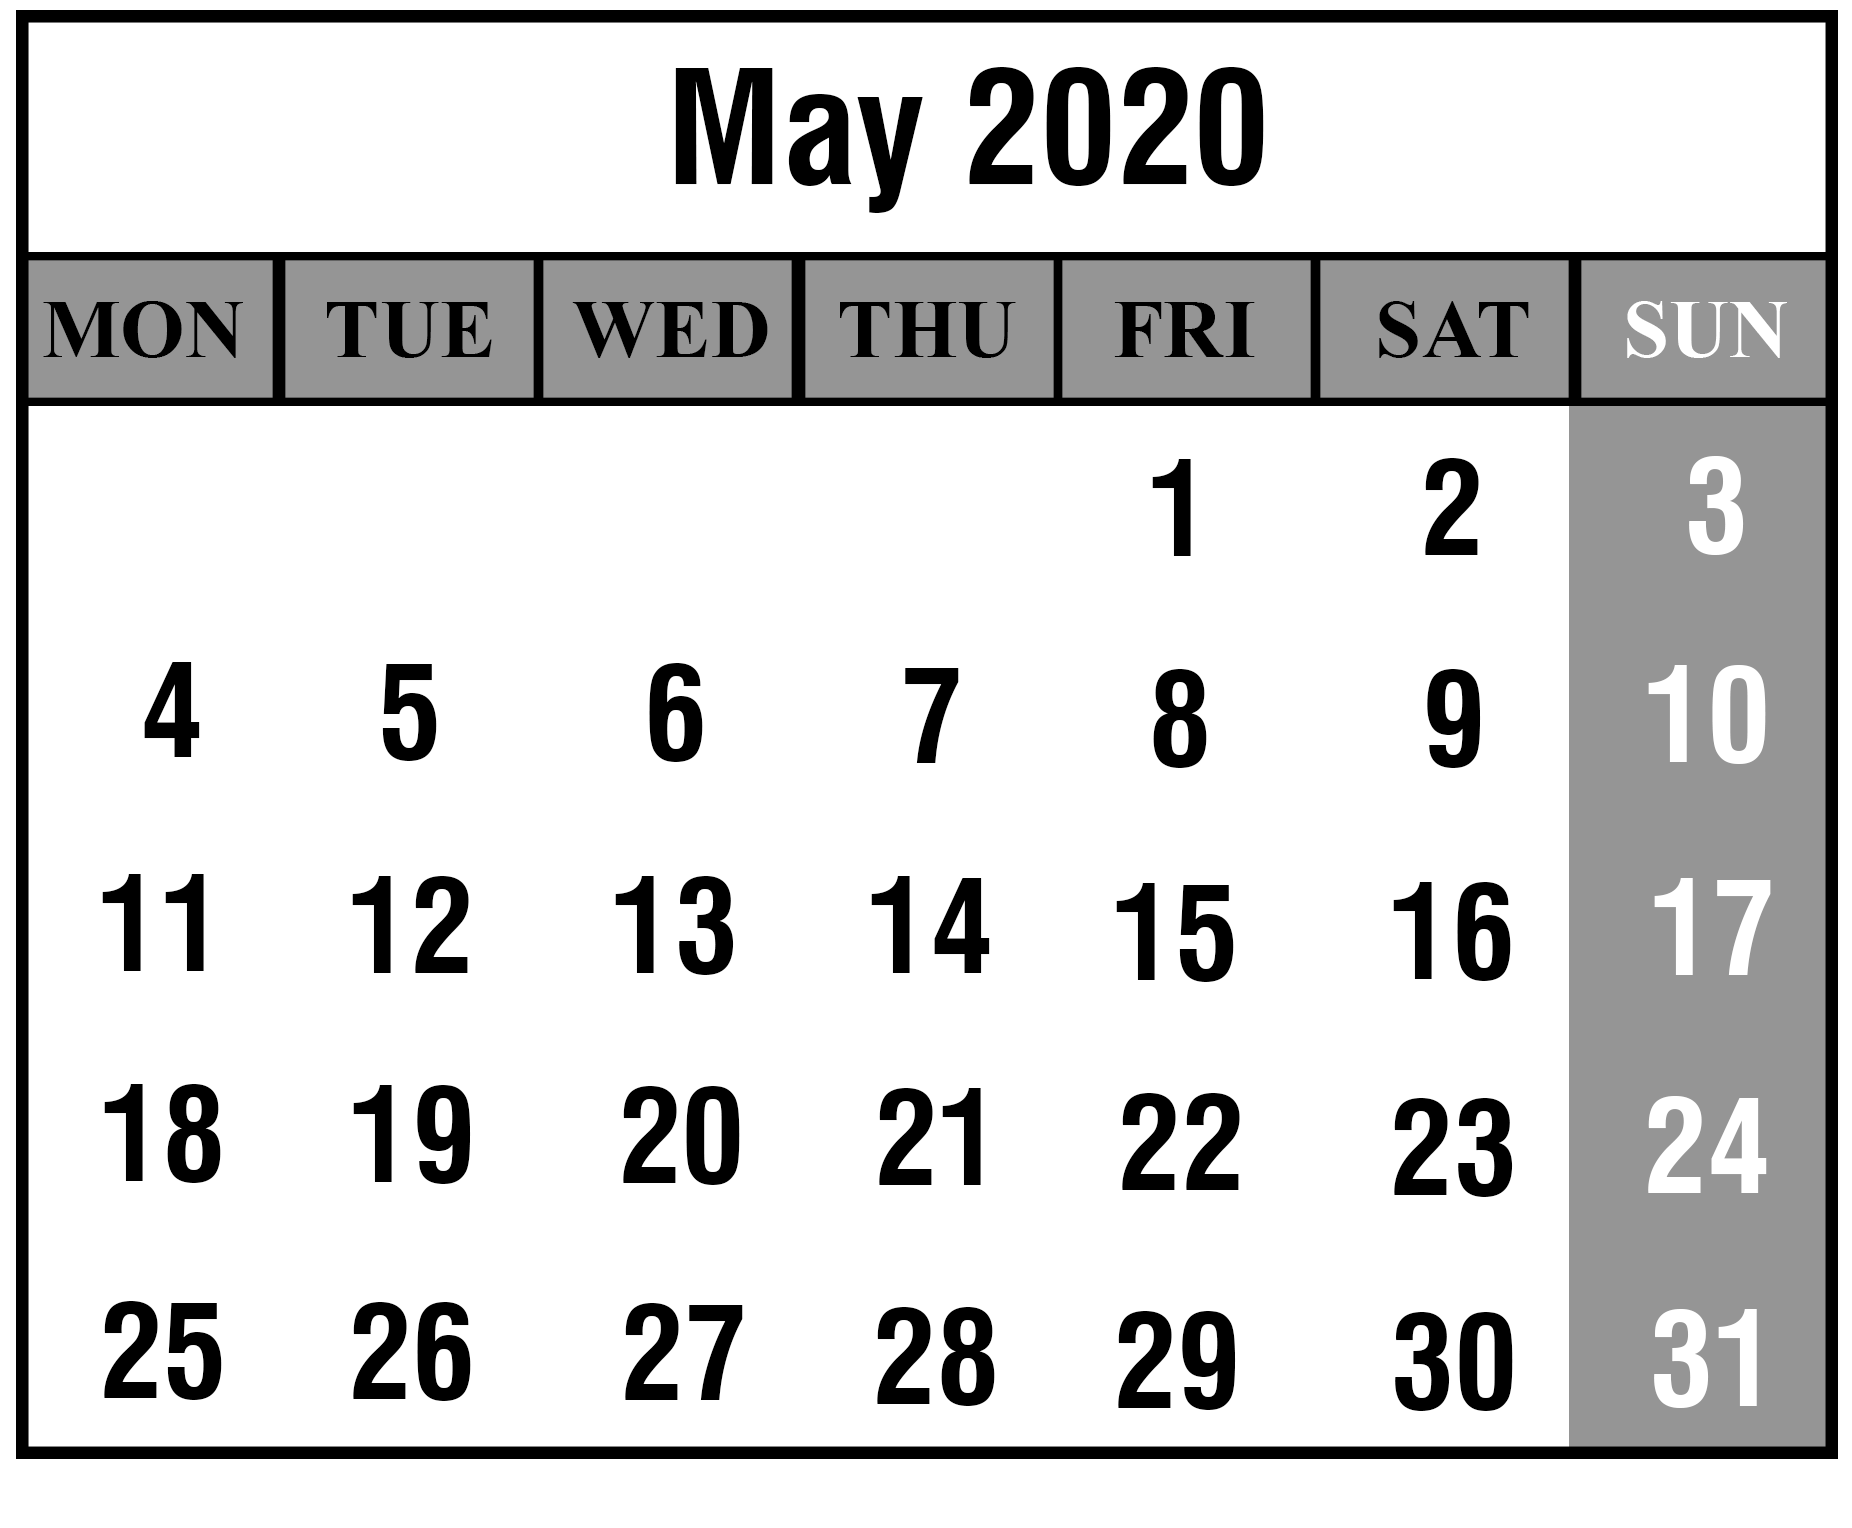 May 2020 Calendar With Holidays Layout